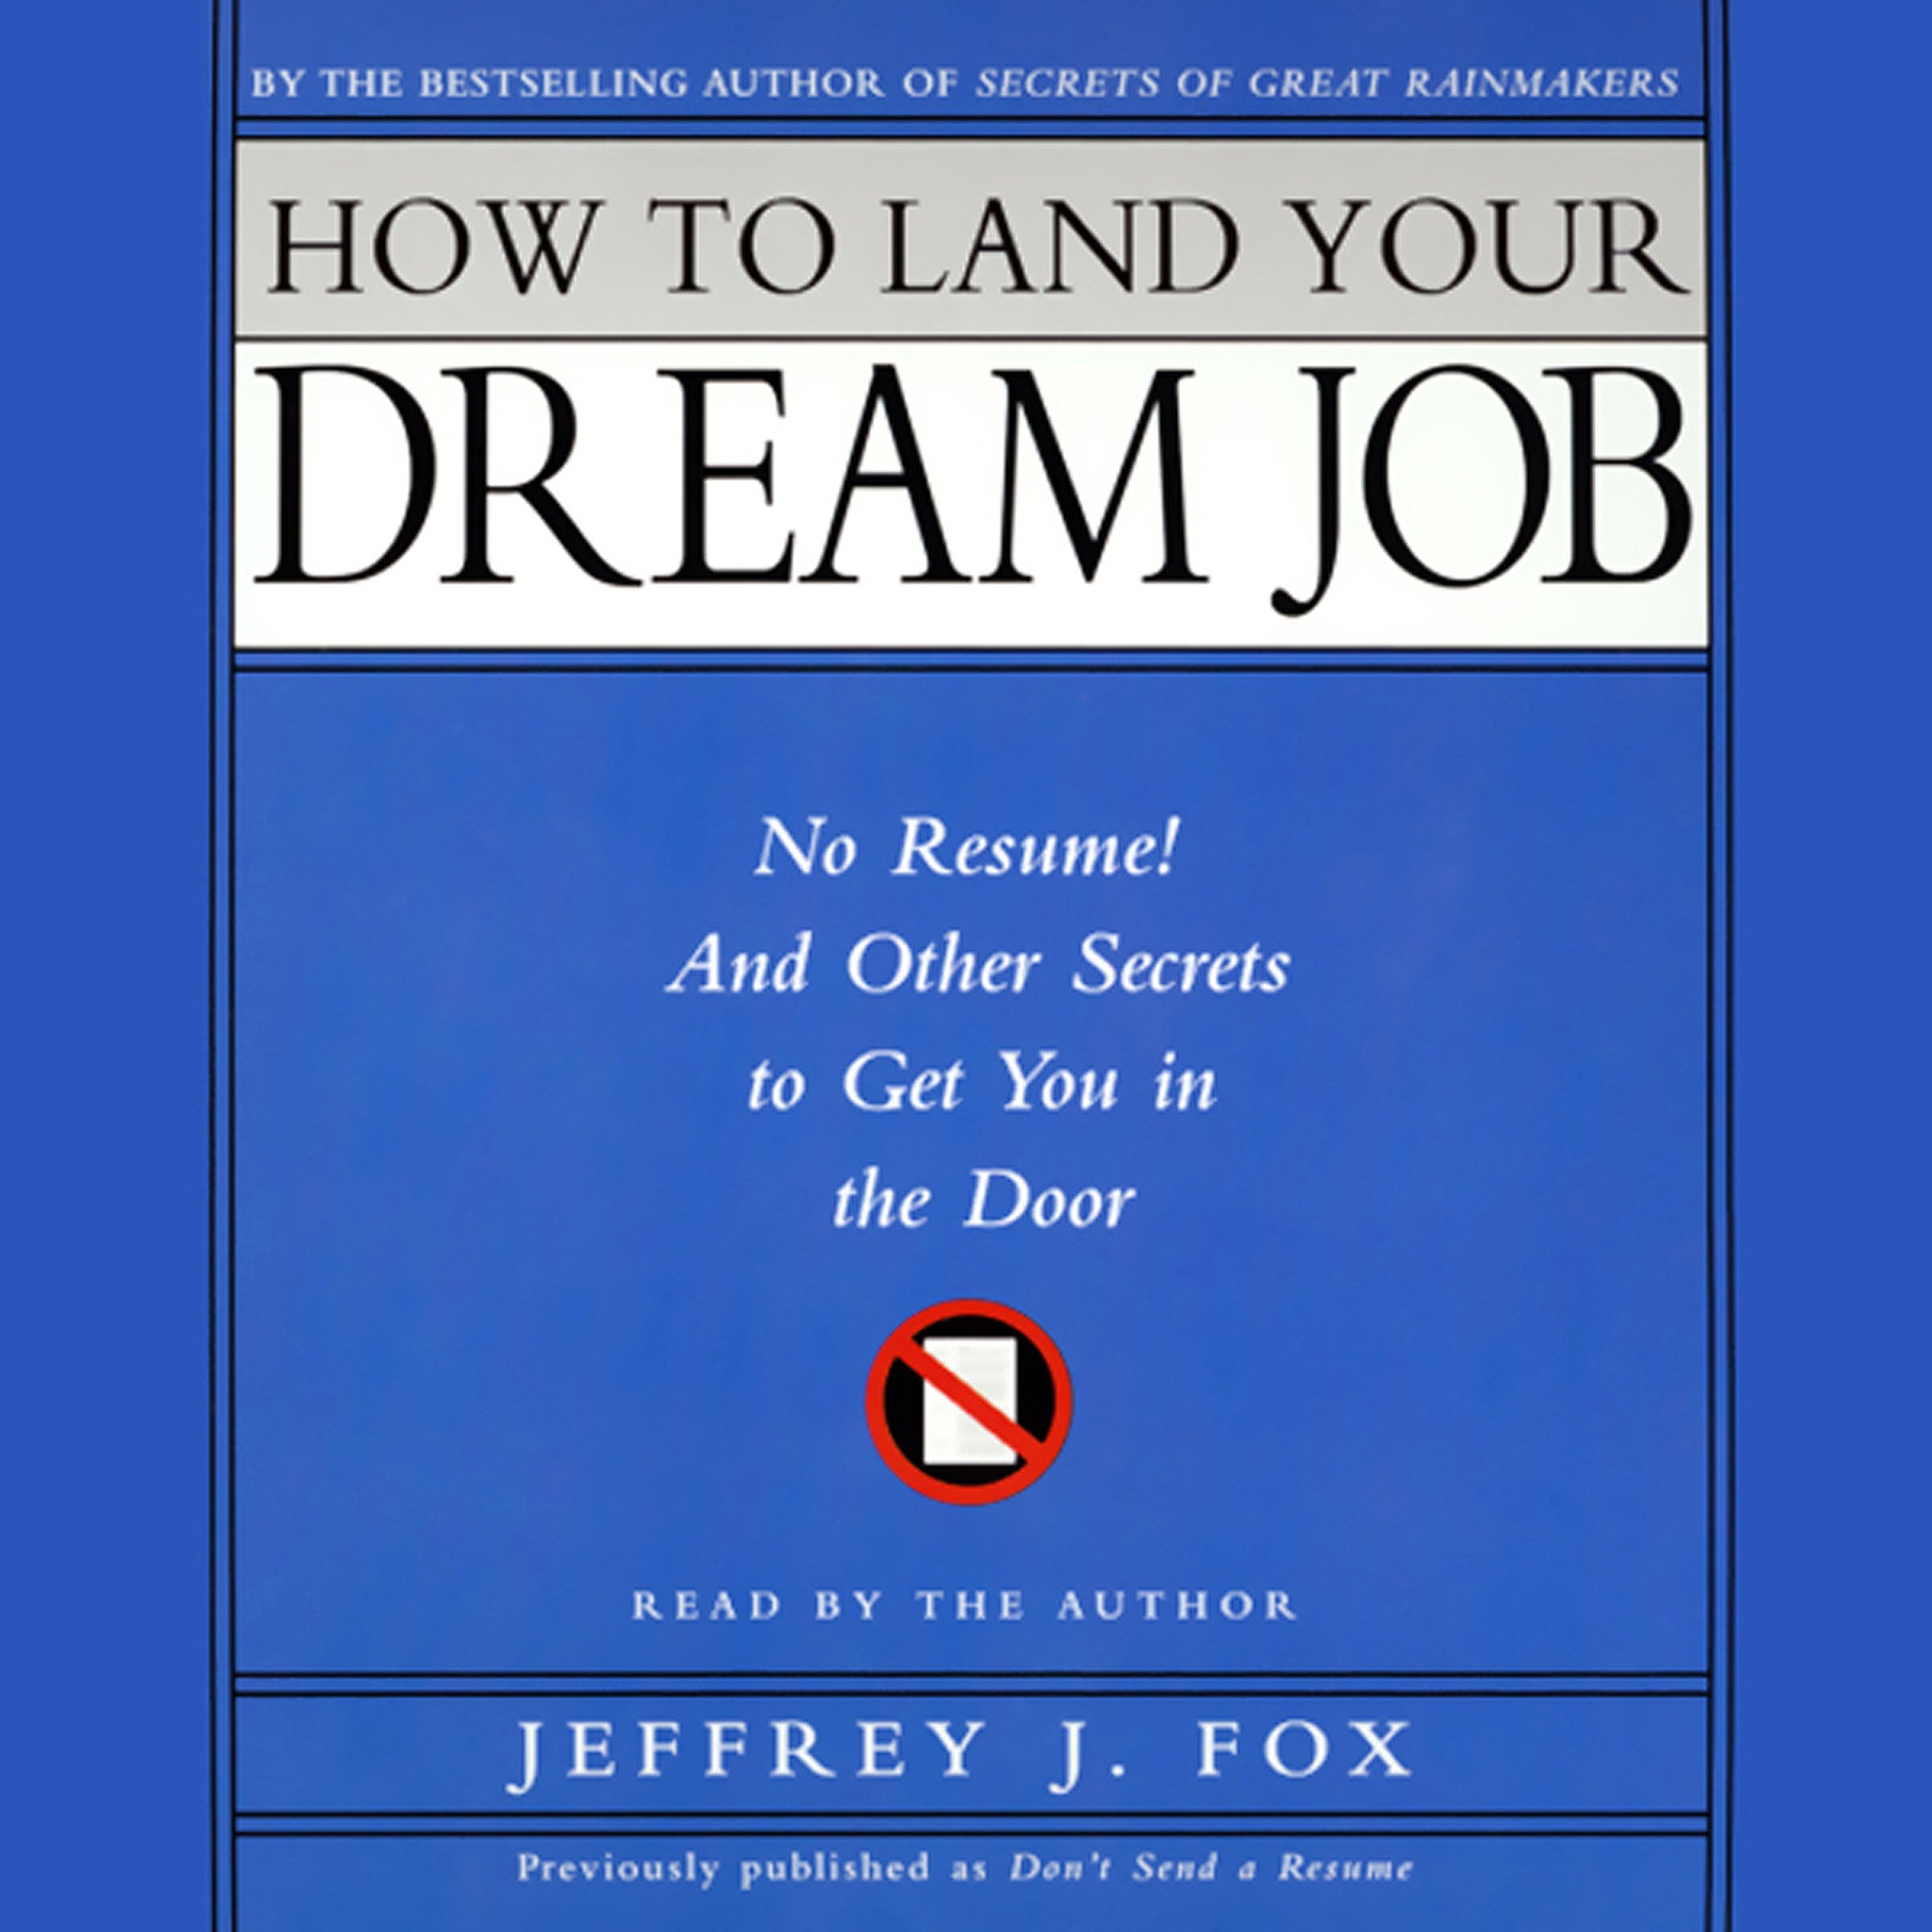 How to Land Your Dream Job: No Resume! And Other Secrets to Get You in the Door